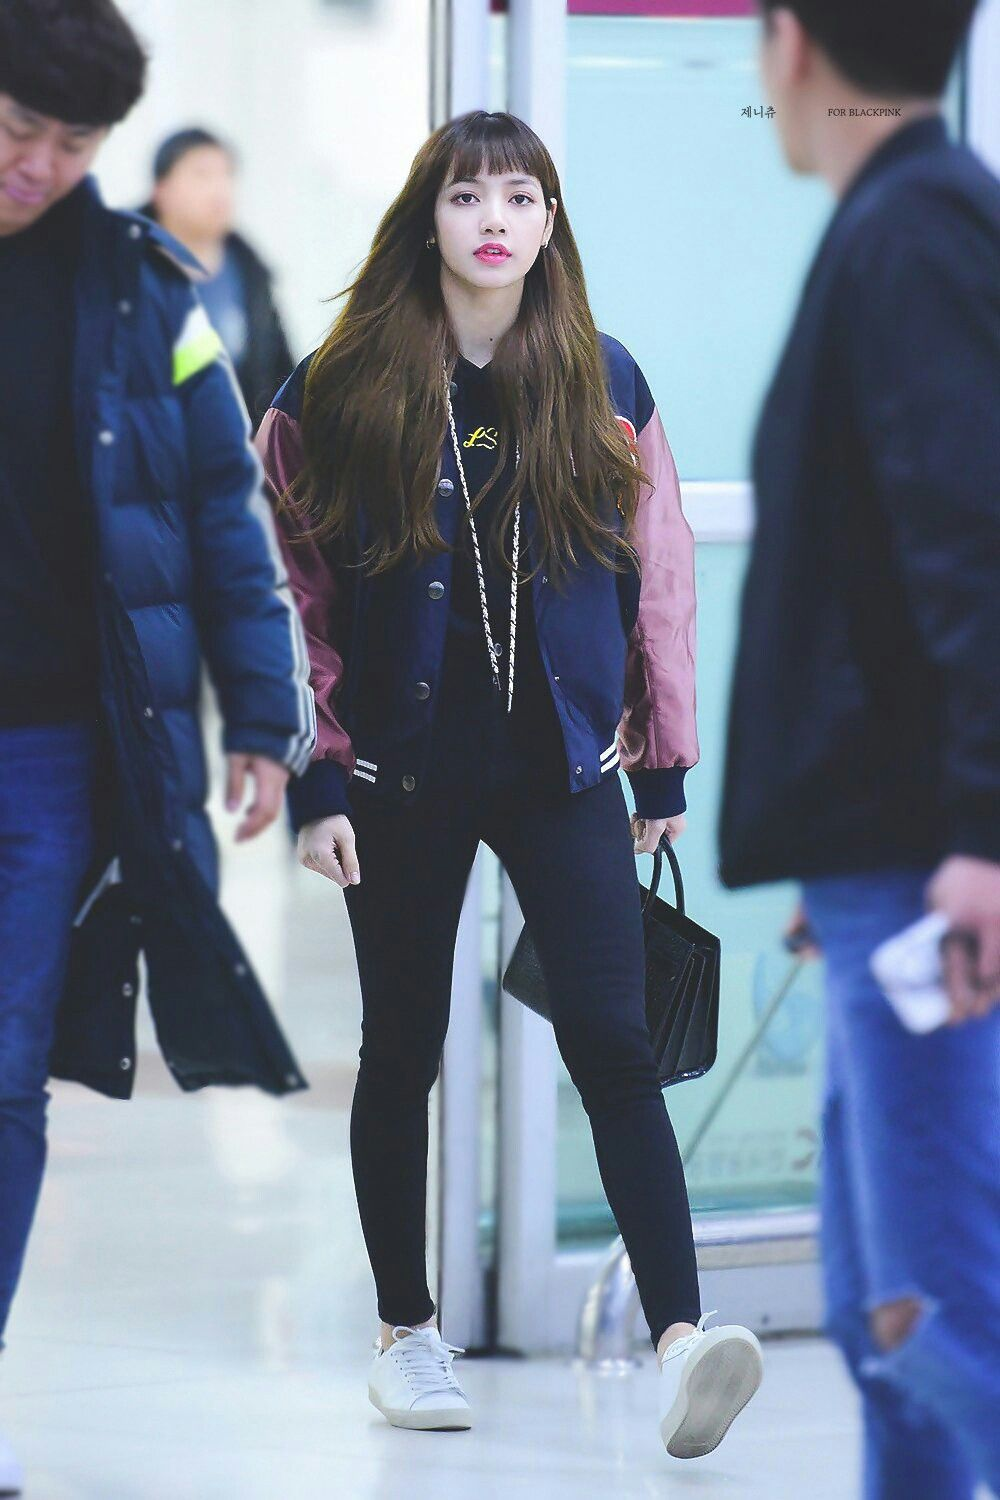 BLACKPINK Lisa at Gimpo Airport | My style | Pinterest | Blackpink lisa Blackpink and Lisa